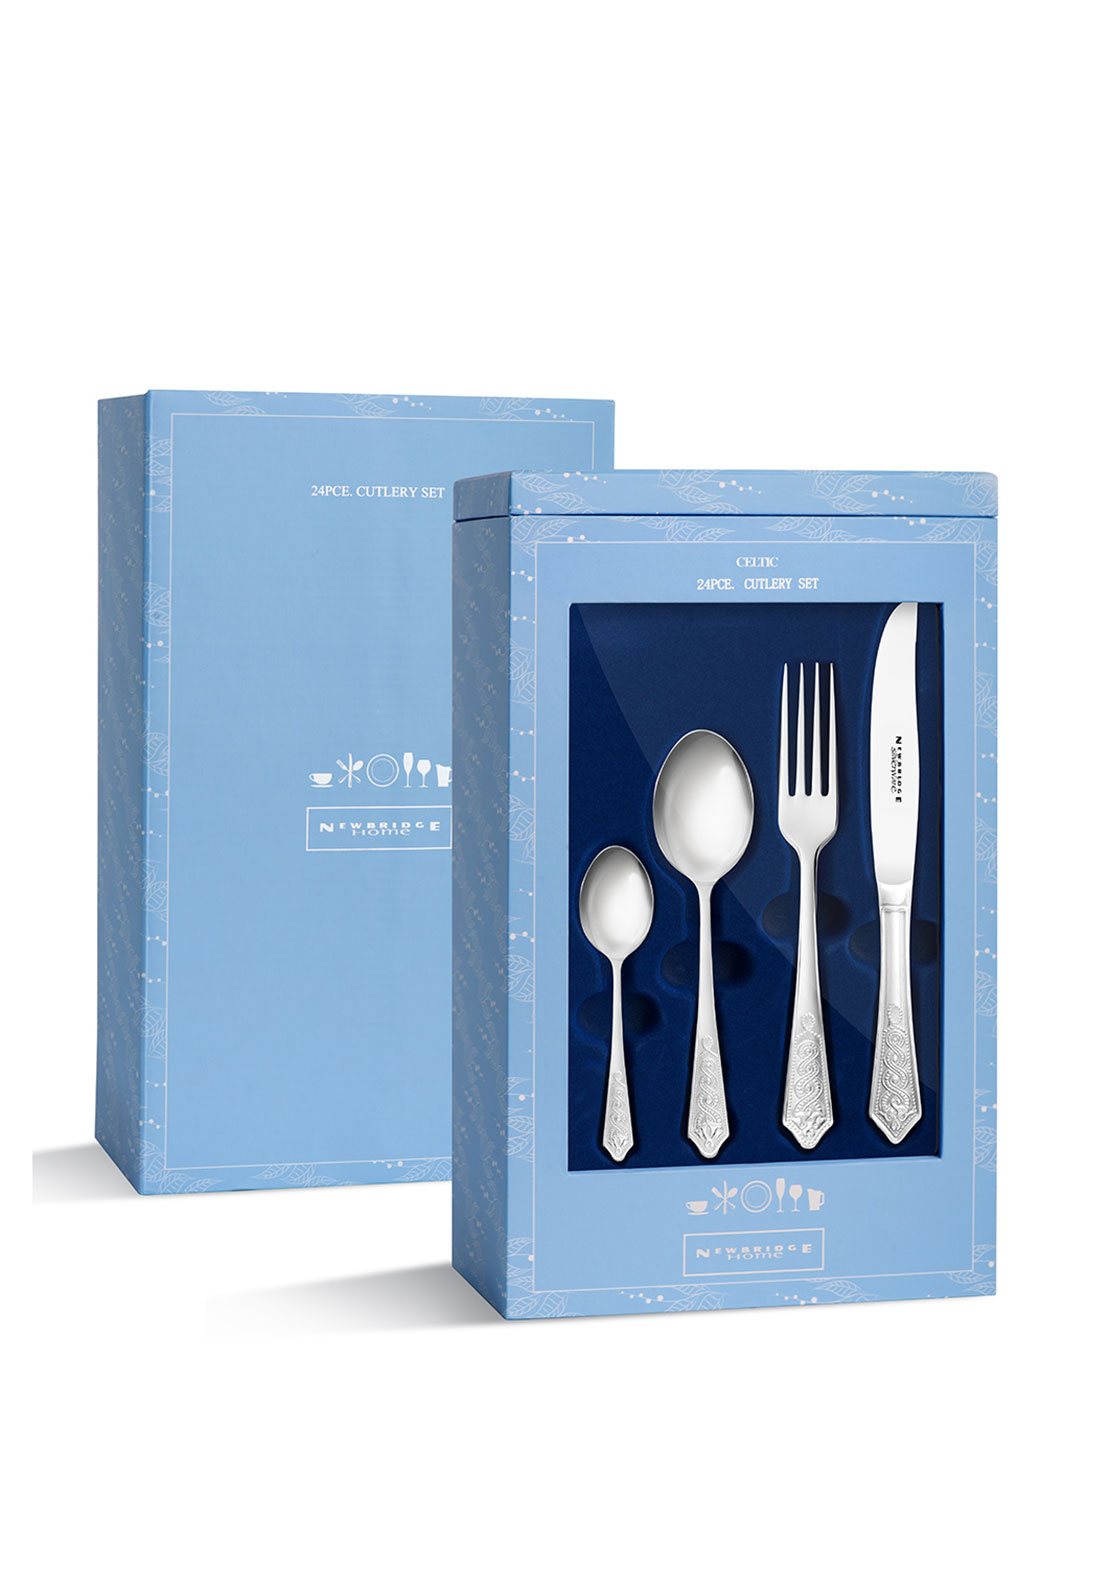 Newbridge Celtic Stainless Steel Cutlery Gift Set, 24pce